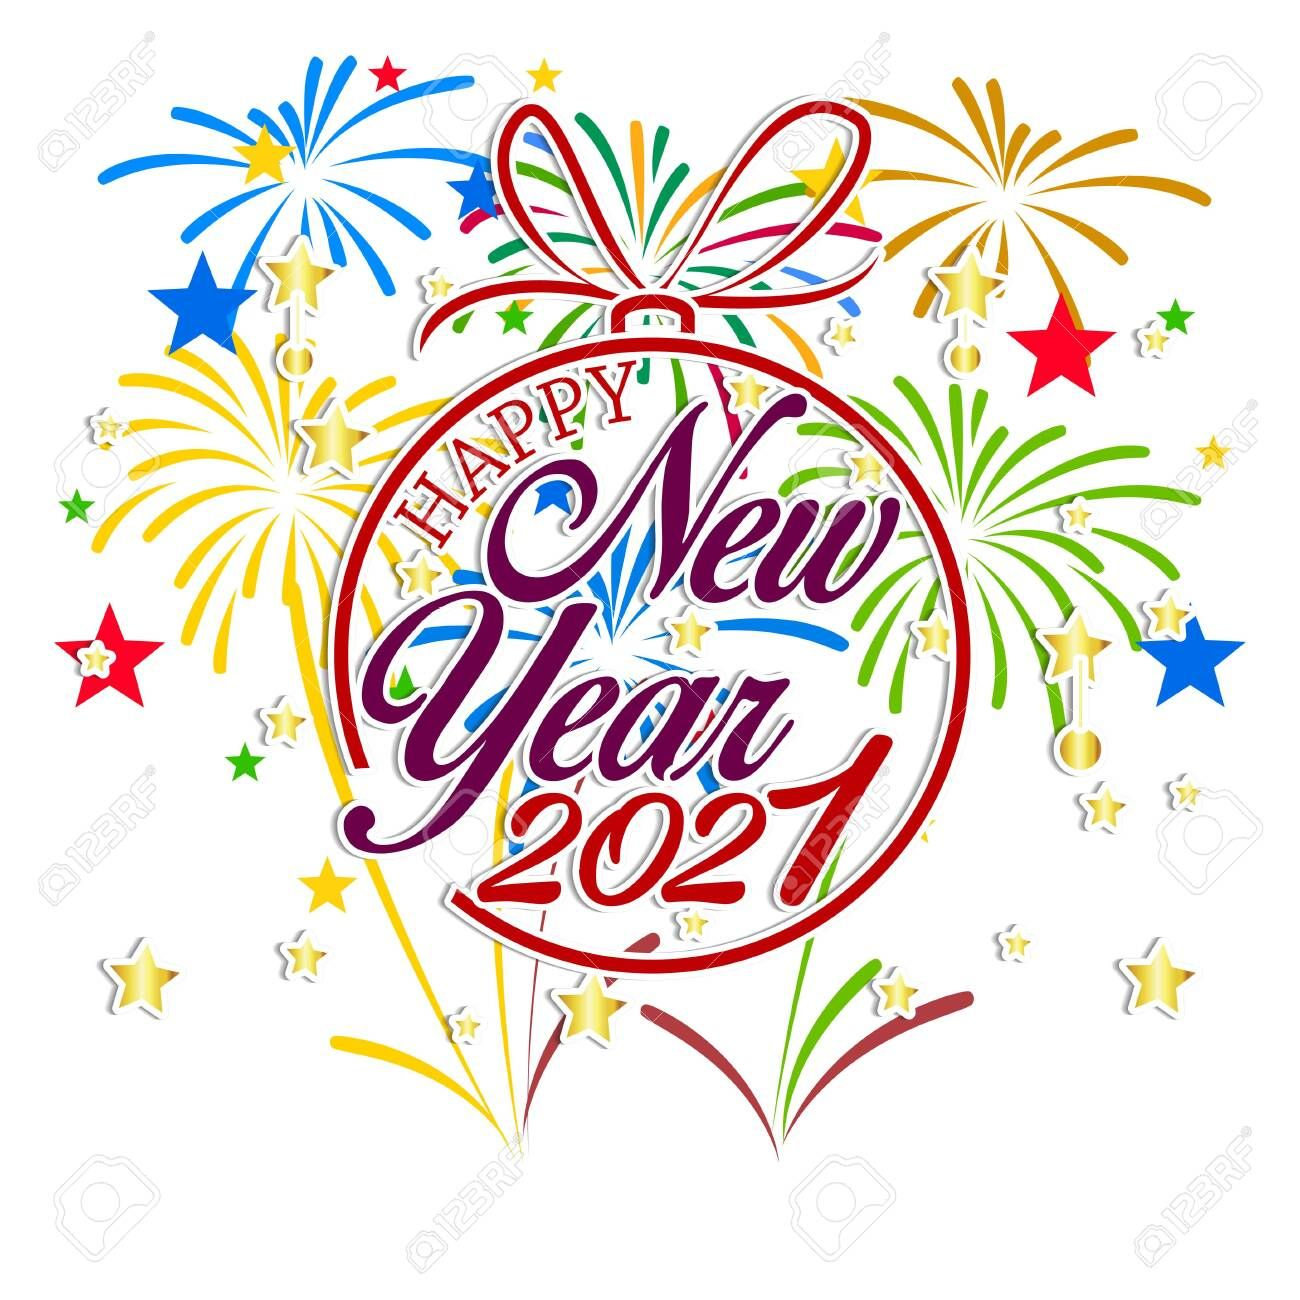 funny new year wishes 2021 for friends in 2020 happy new year pictures happy new year fireworks happy new year greetings funny new year wishes 2021 for friends